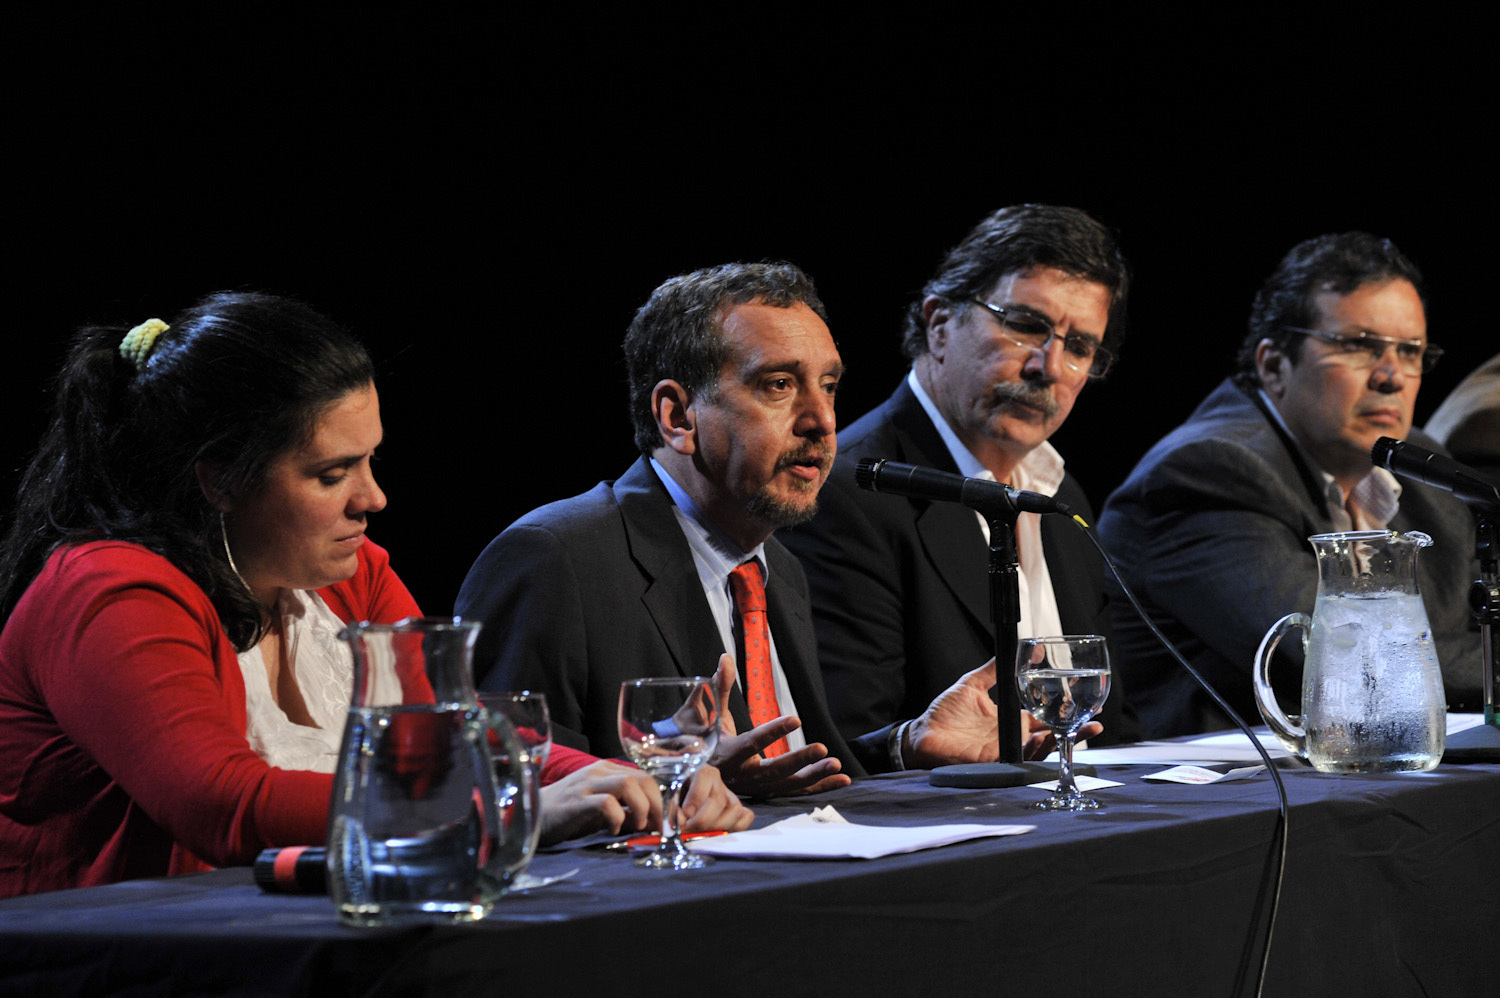 Minister Barañao in the opening of the meeting